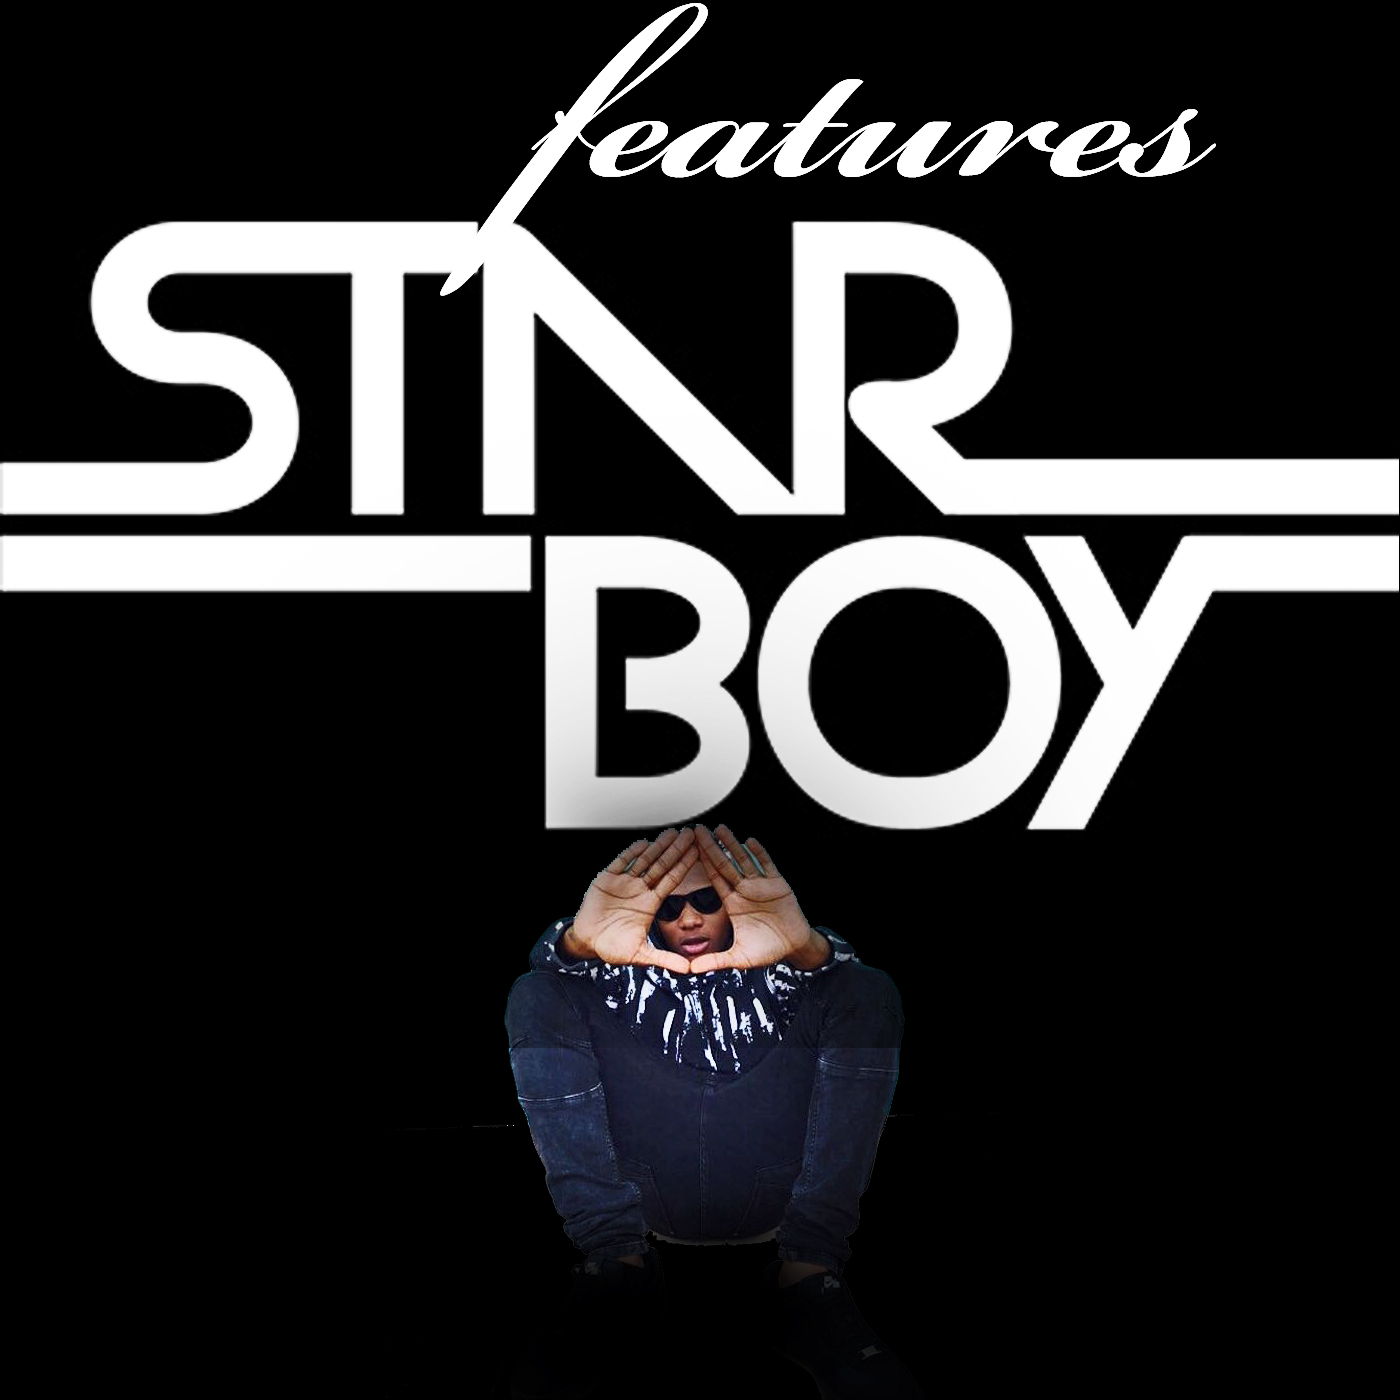 Features StarBoy